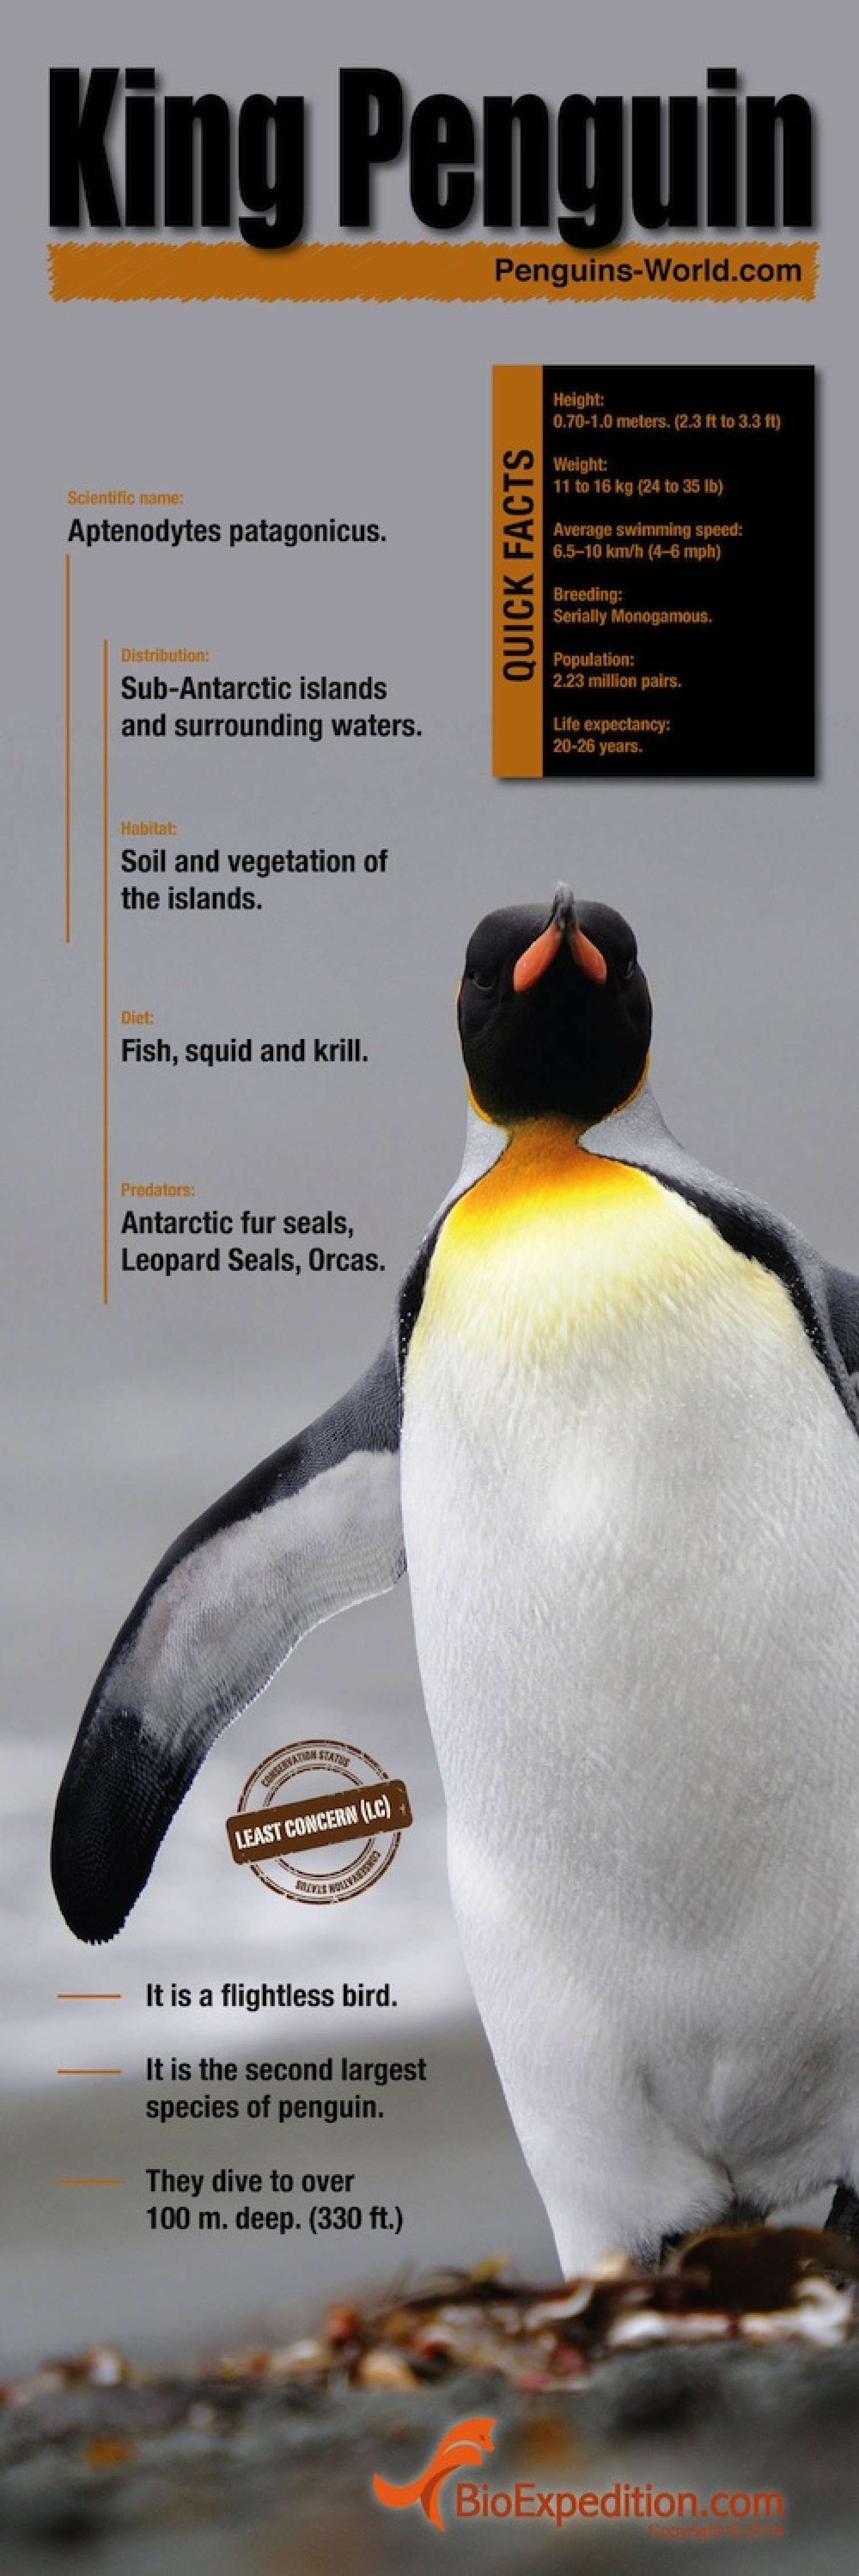 King Penguin Infographic